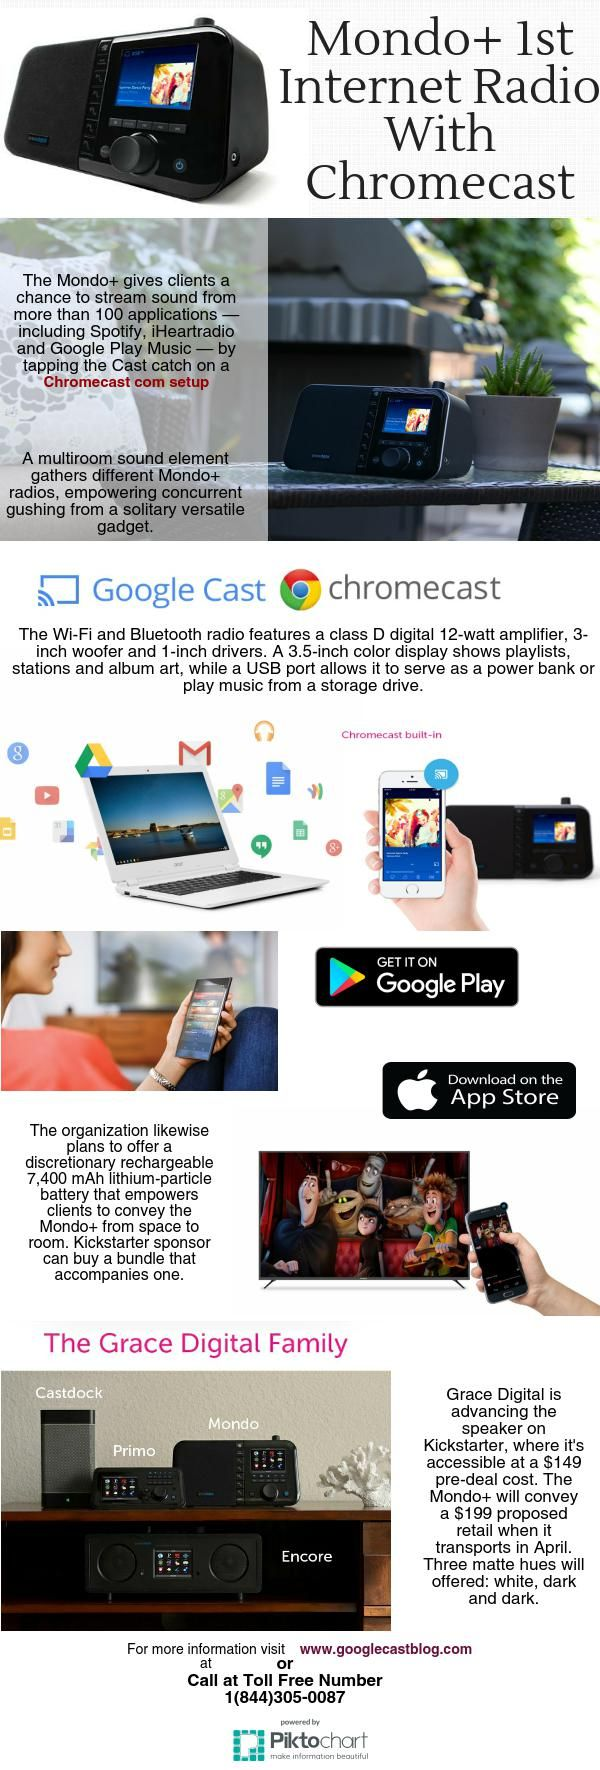 Grace Digital has divulged what it's calling the primary Internet radio with implicit Chromecast.